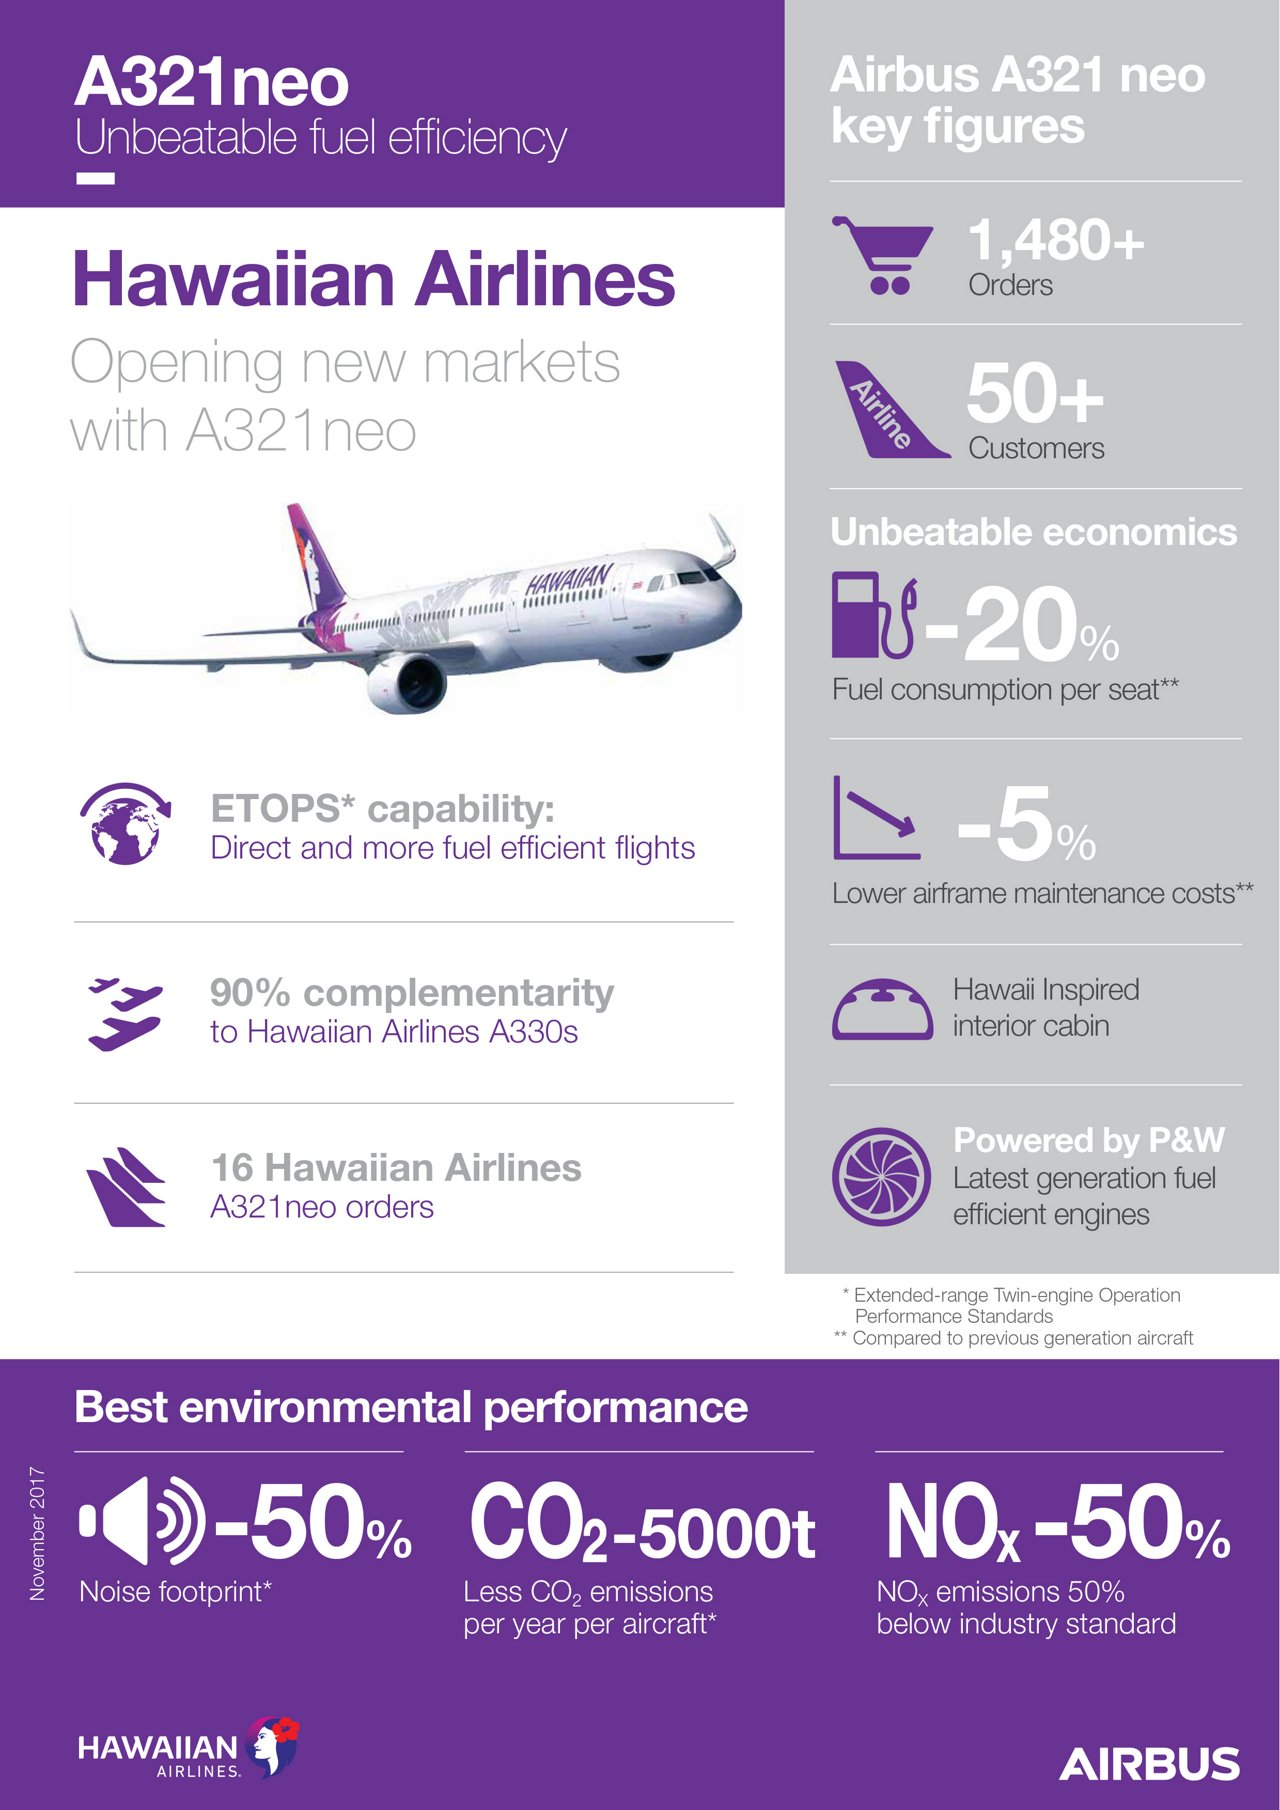 A321neo_Infographic_Hawaiian Airlines_V4_Rev